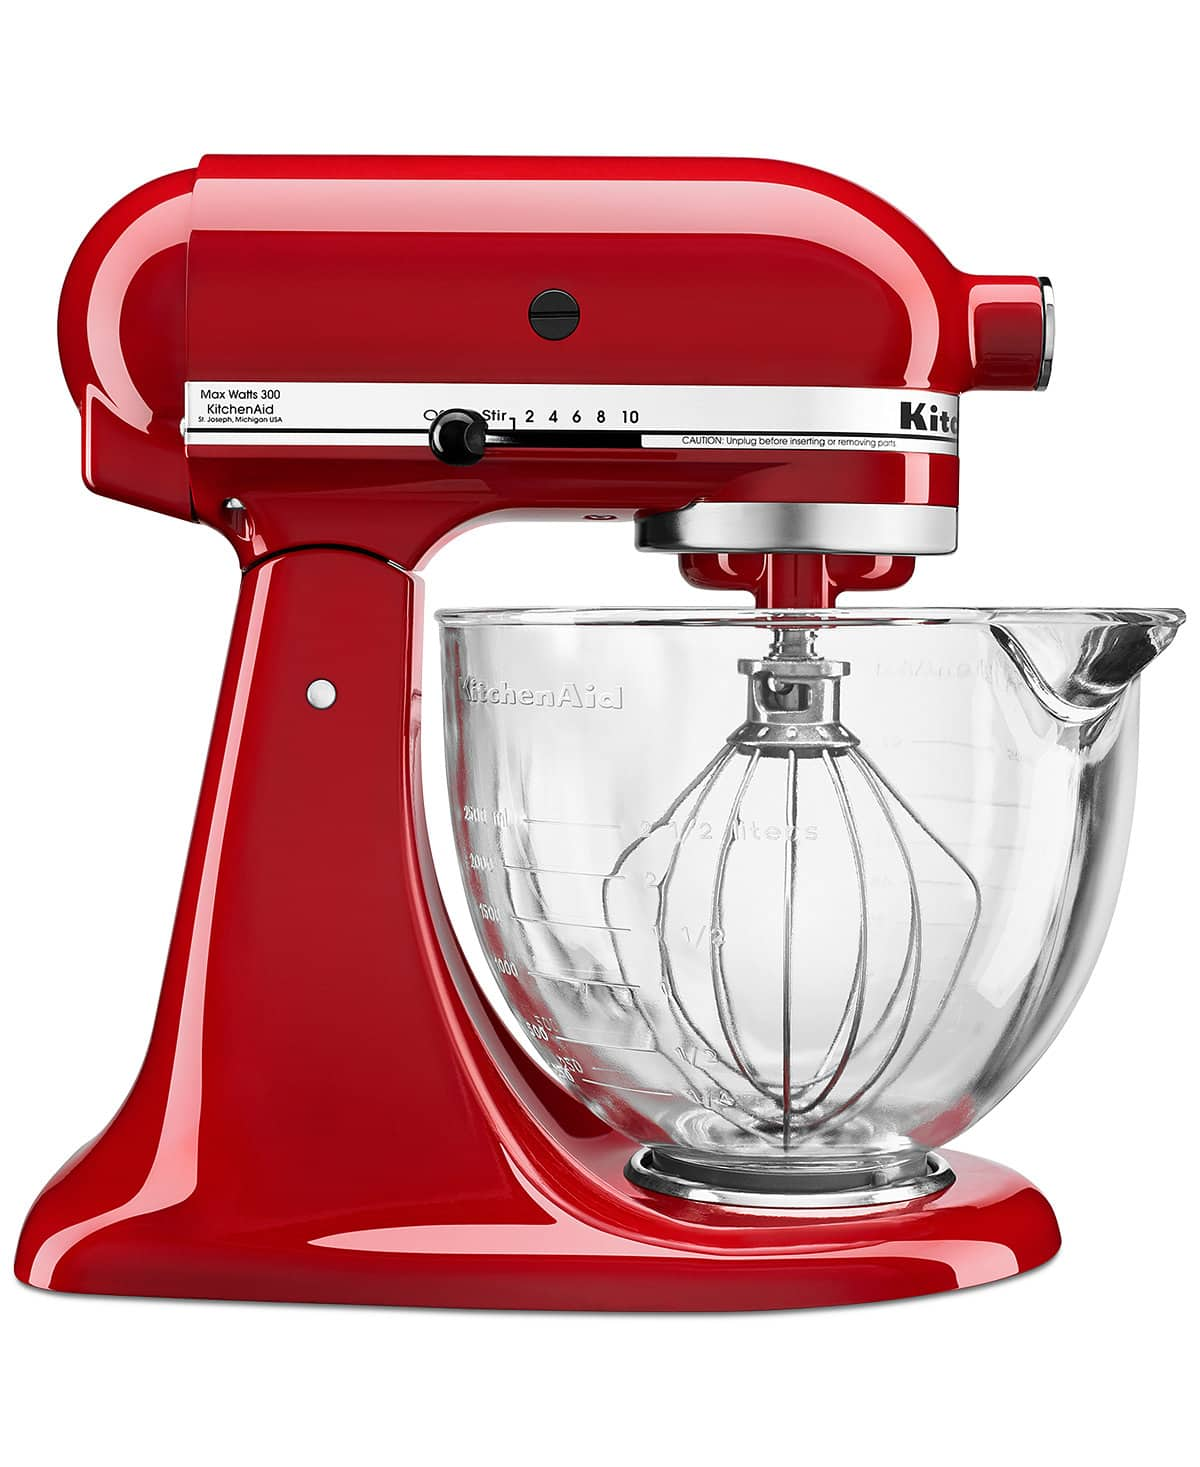 KitchenAid 5 Quart Stand Mixer with Glass Bowl & Flex Edge Beater - $209.99 w/ Free Shipping